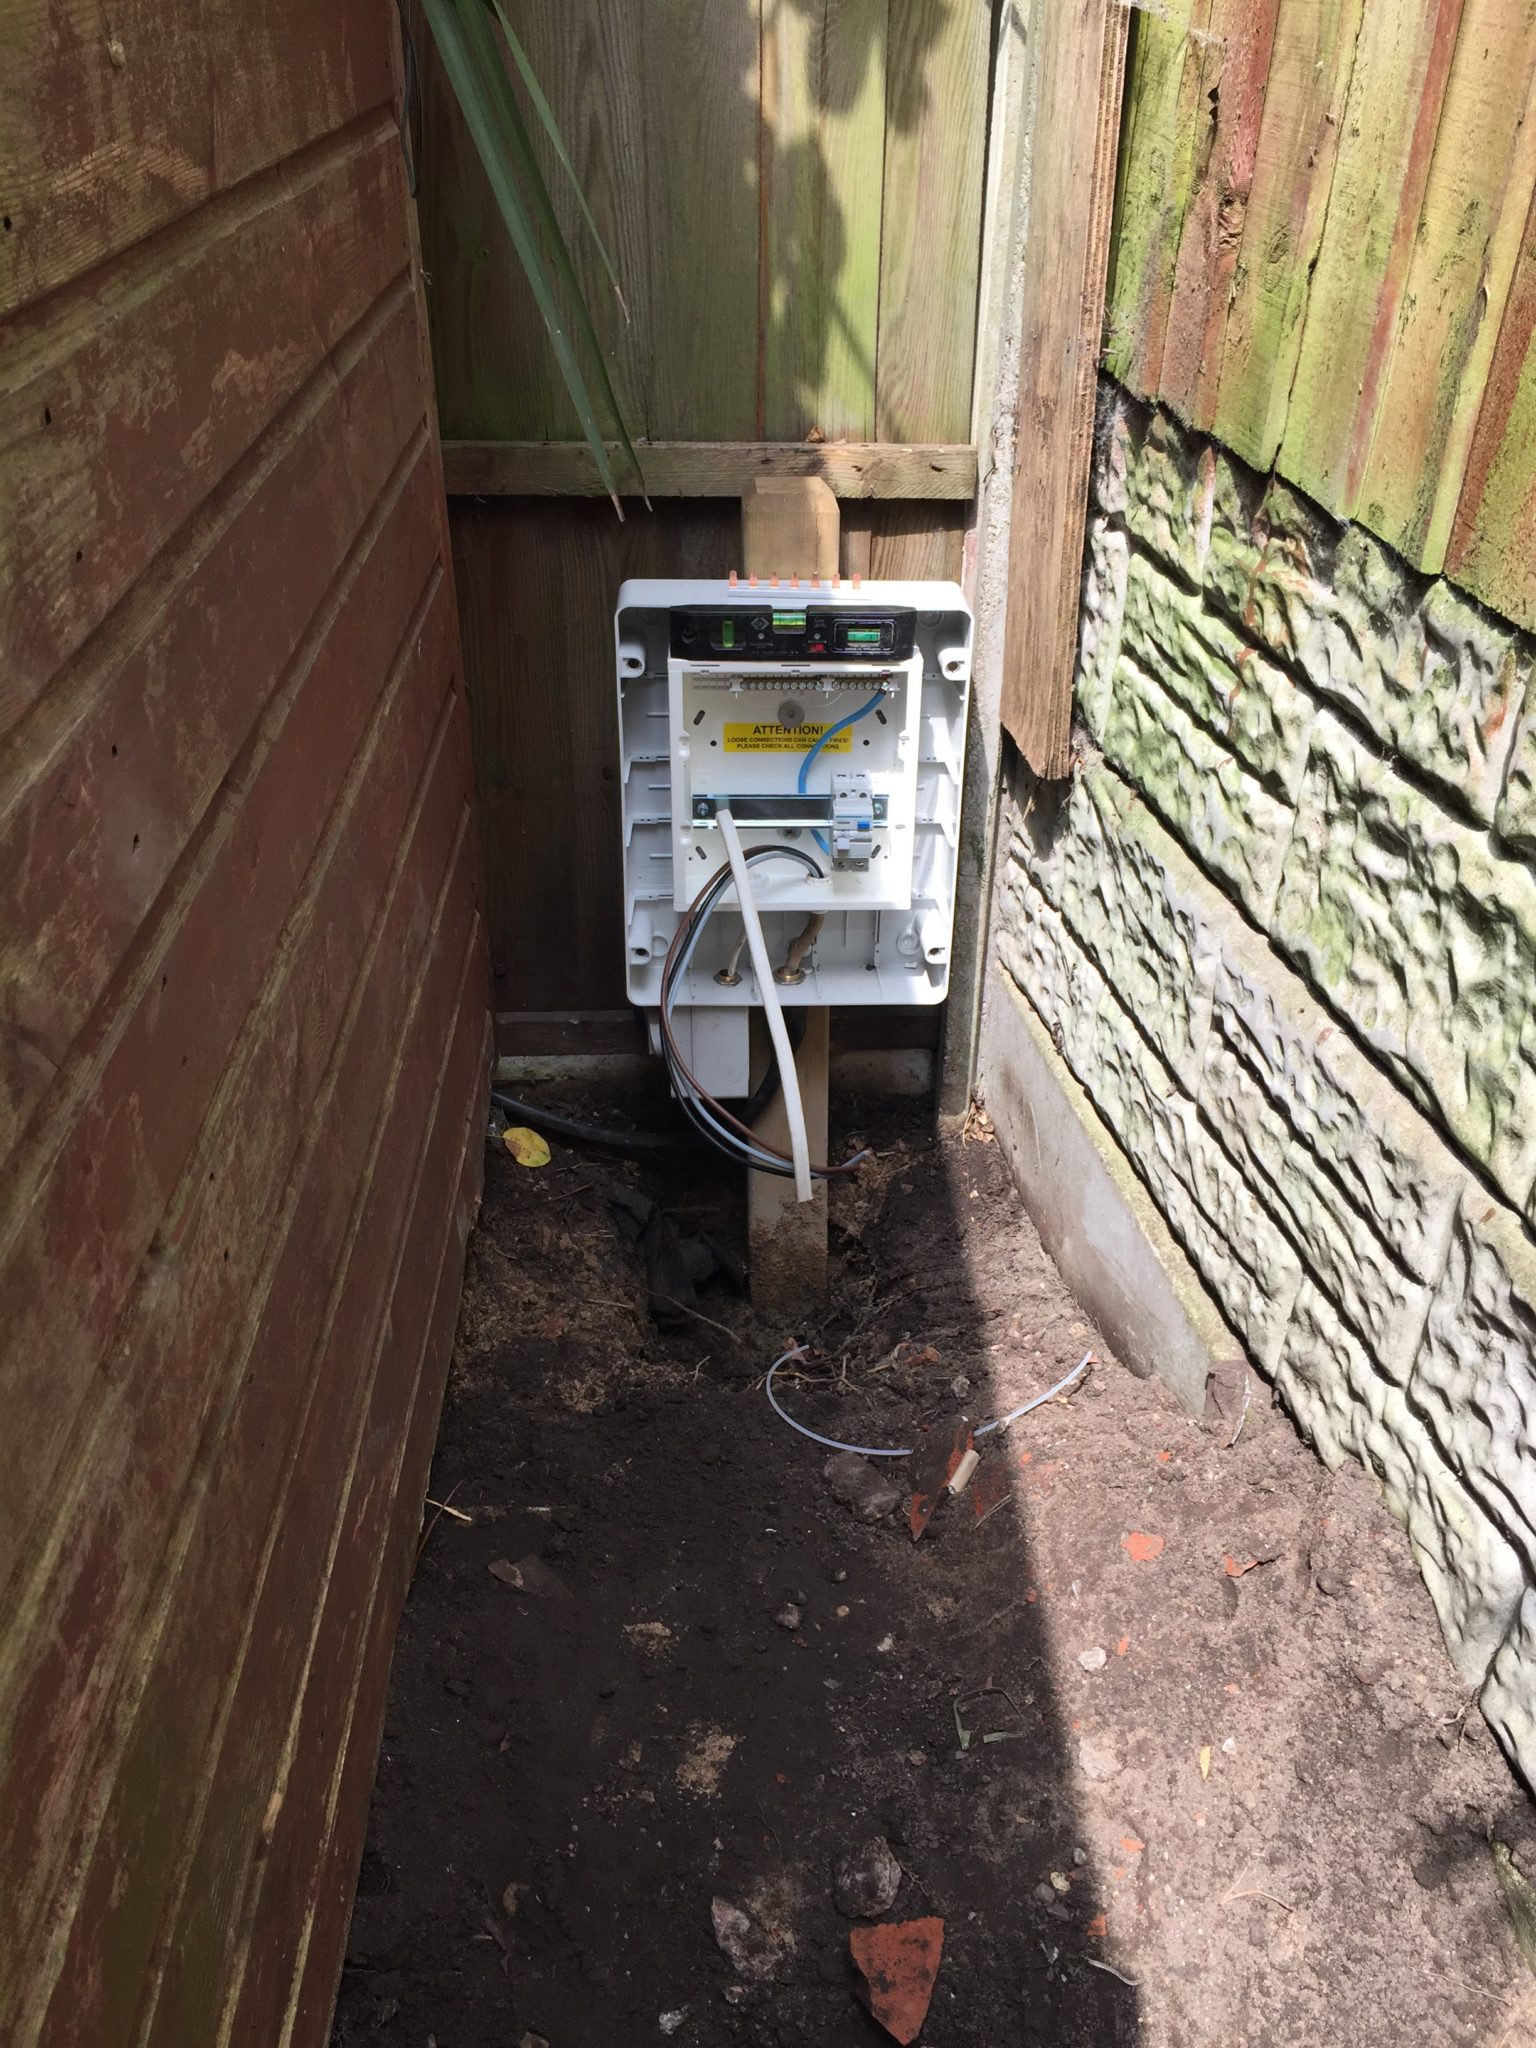 Installing Hot Tubs And Jacuzzis Case Young Local Electricians Tub Wiring Regulations Uk Here Are 2 Installations We Carried Out In Runcorn This Week